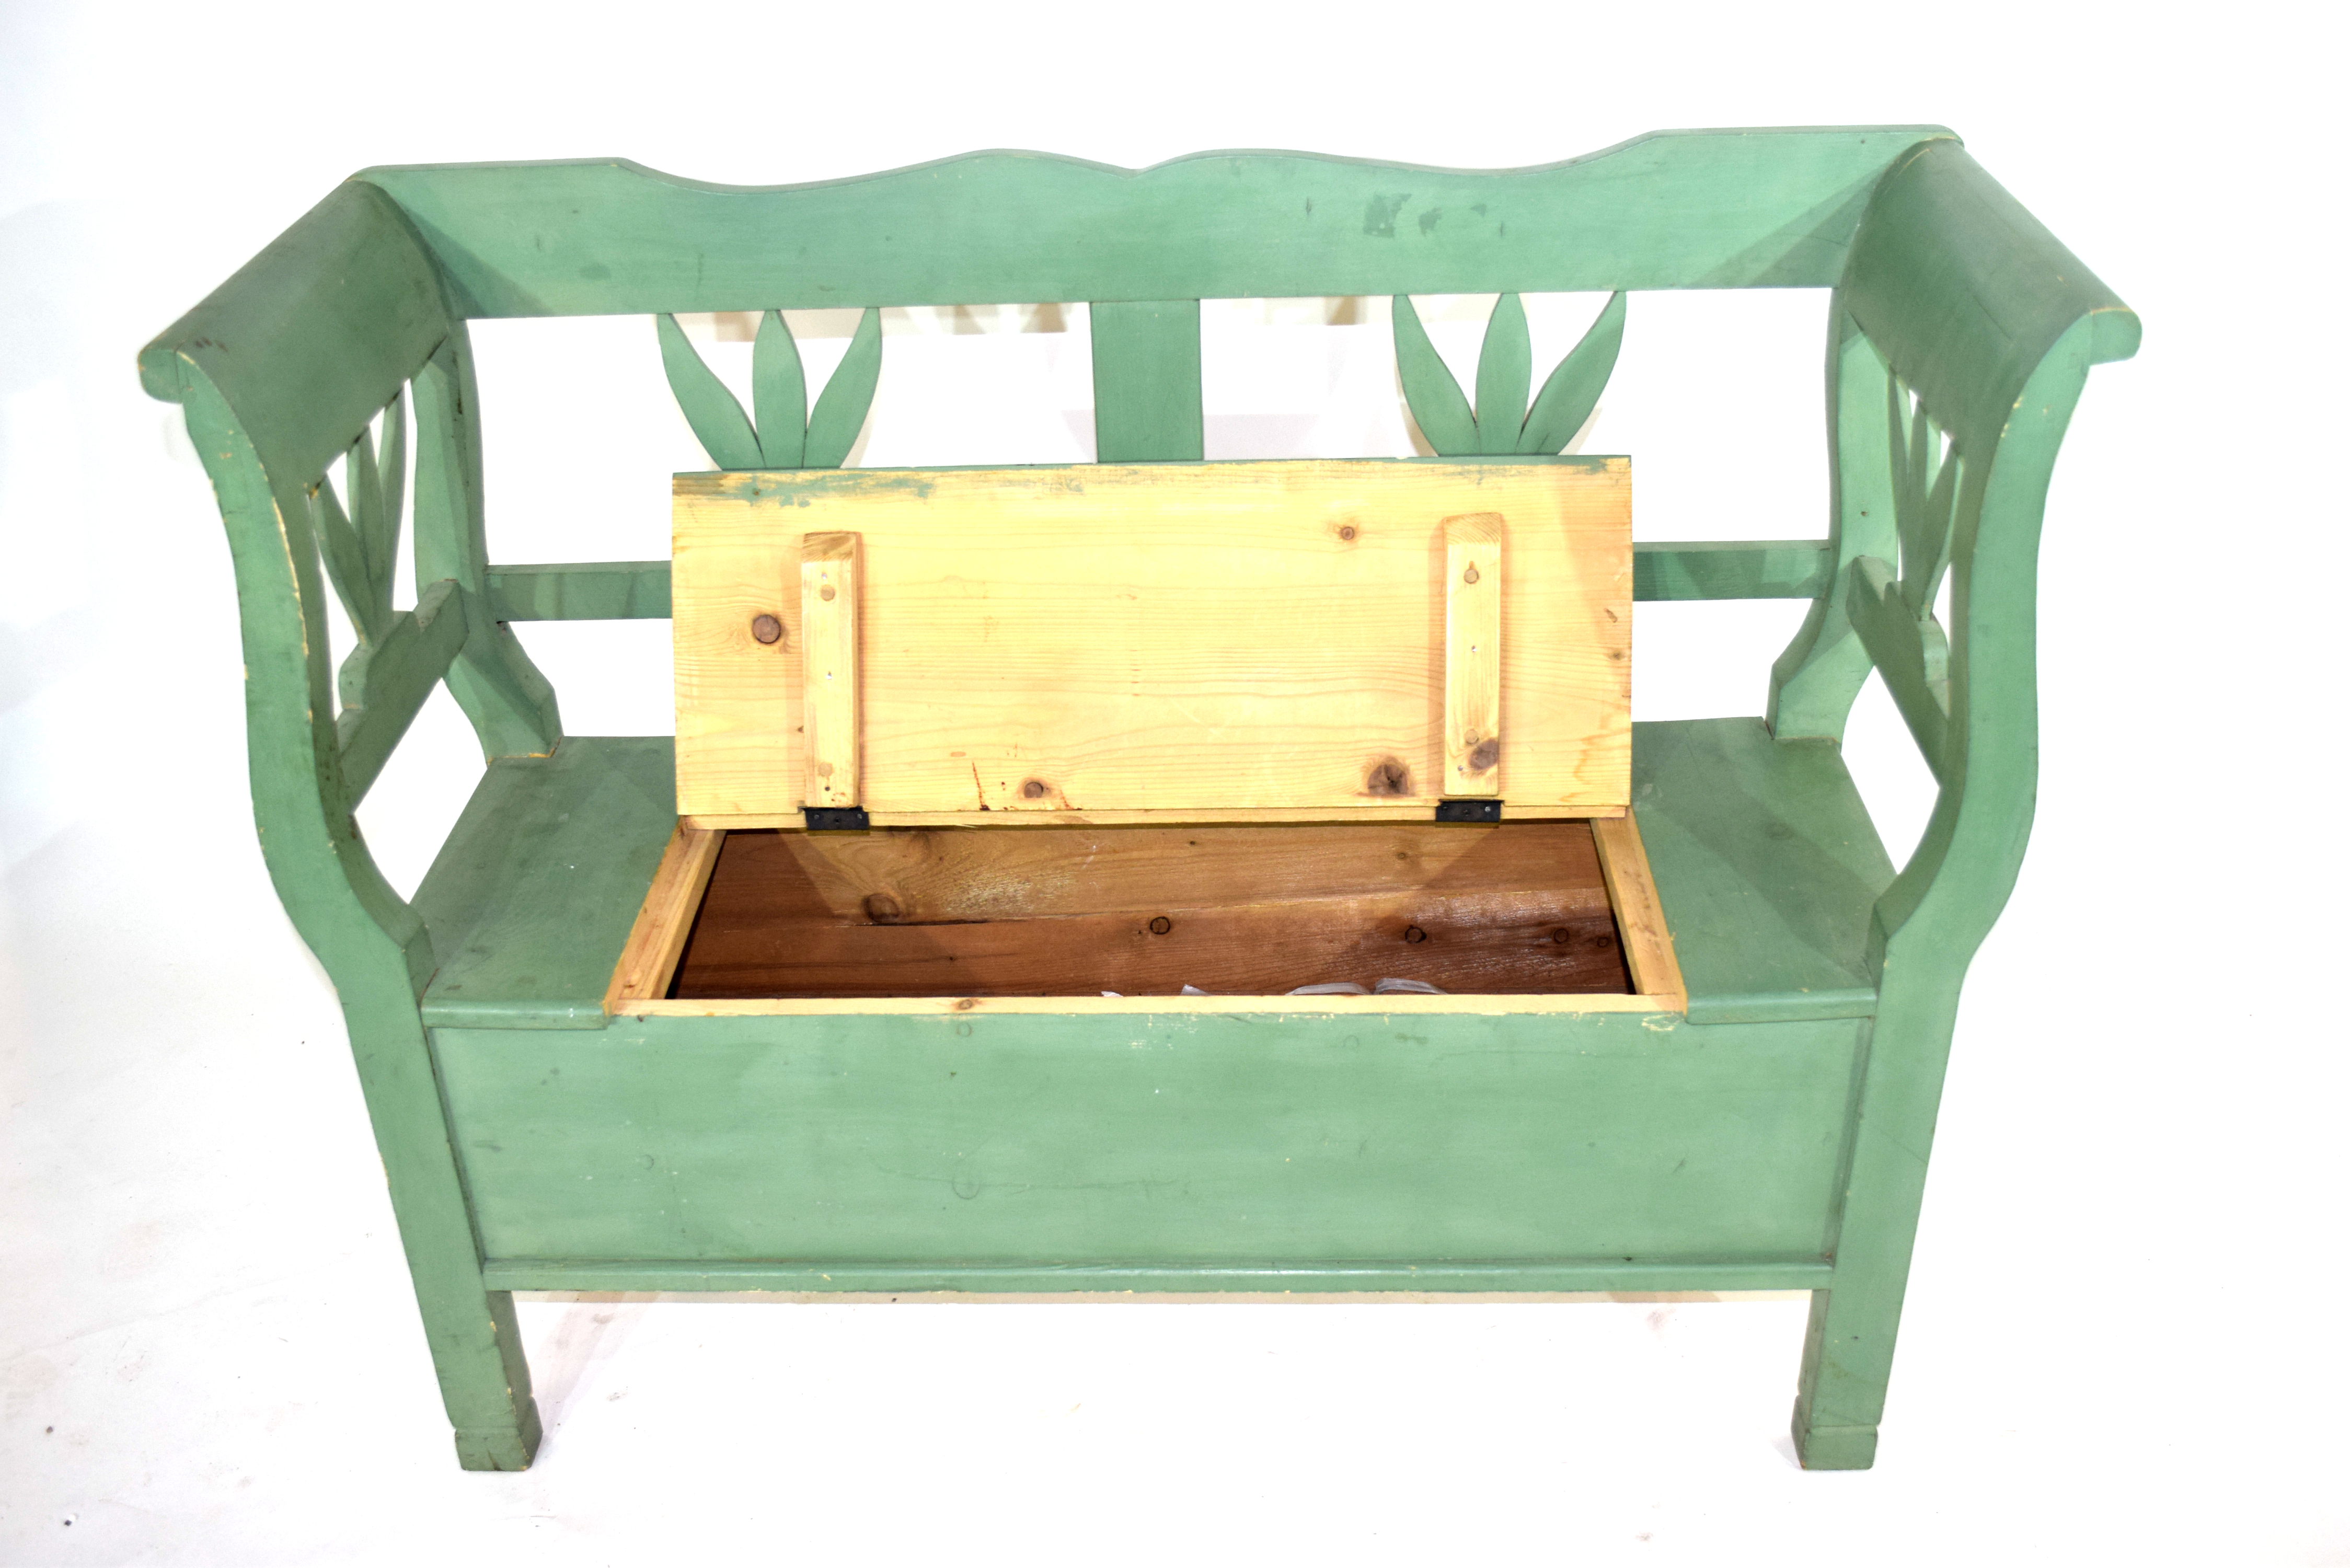 Painted pine settle with storage seat 119cm wide Condition: Paint work in worn condition^ appears - Image 2 of 4